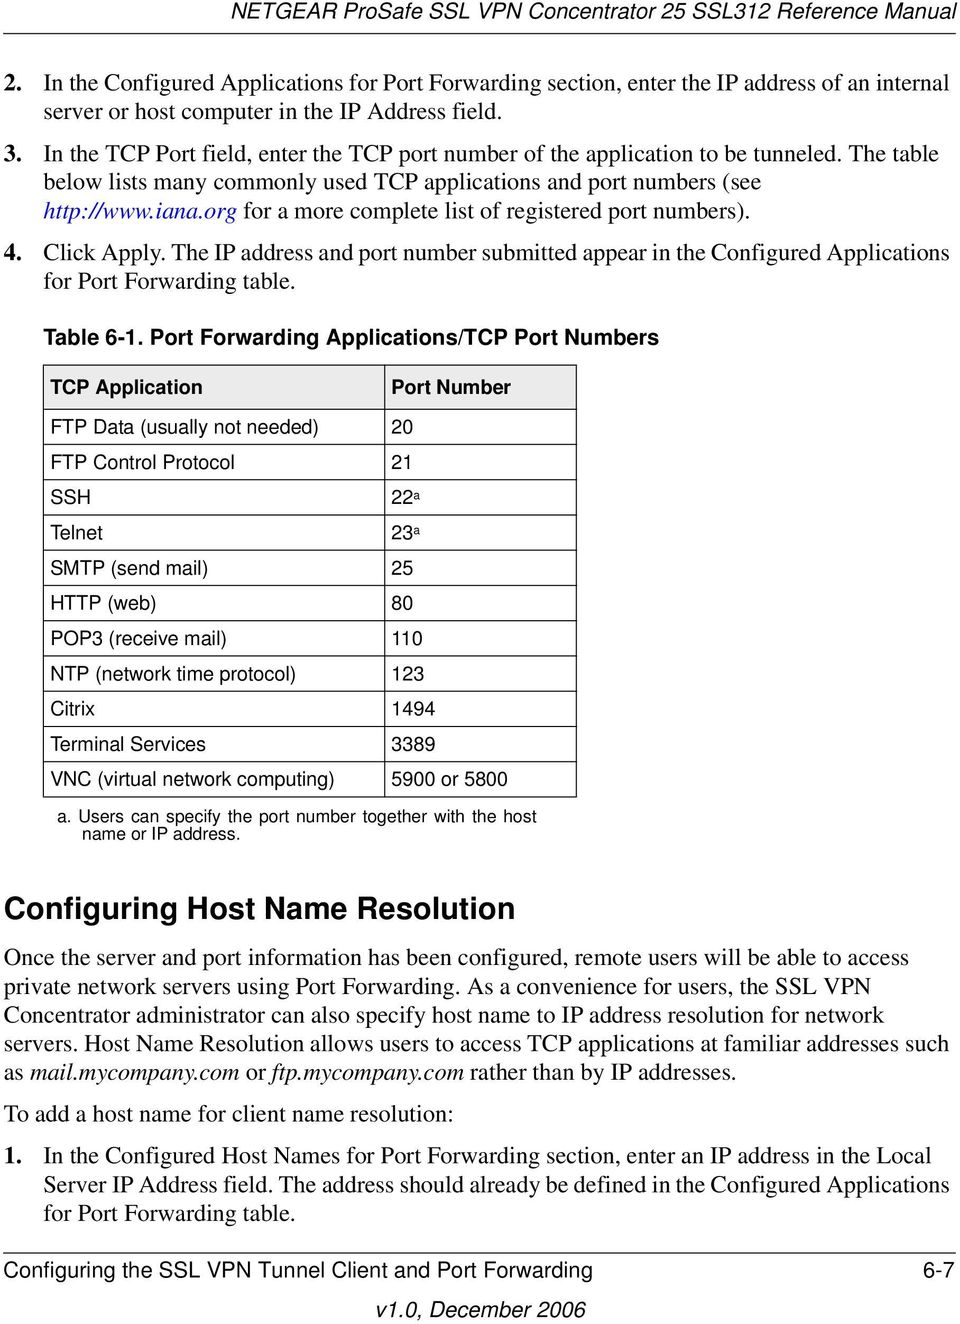 org for a more complete list of registered port numbers). 4. Click Apply. The IP address and port number submitted appear in the Configured Applications for Port Forwarding table. Table 6-1.